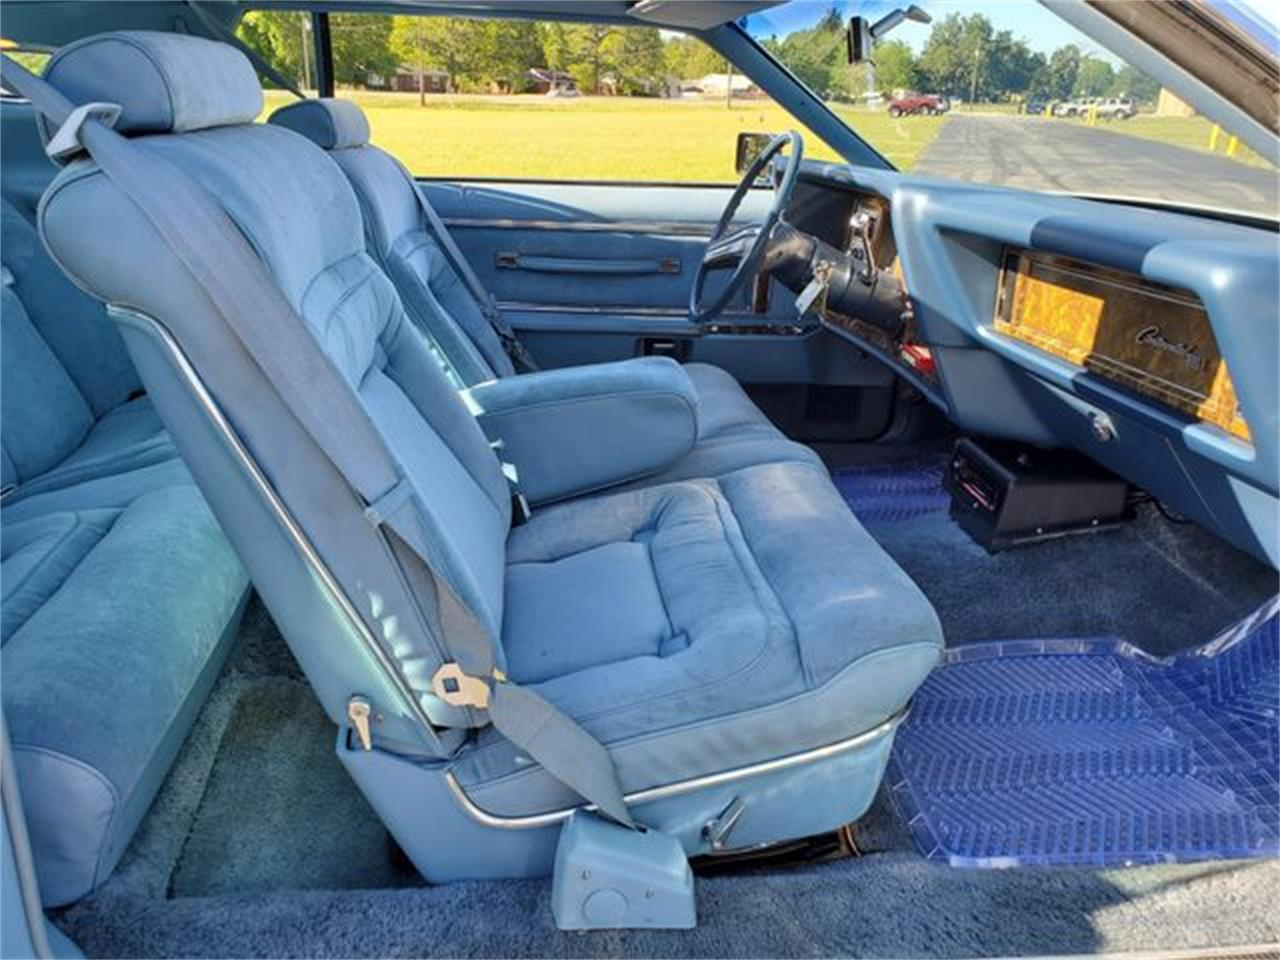 1979 Lincoln Continental for sale in Hope Mills, NC – photo 37